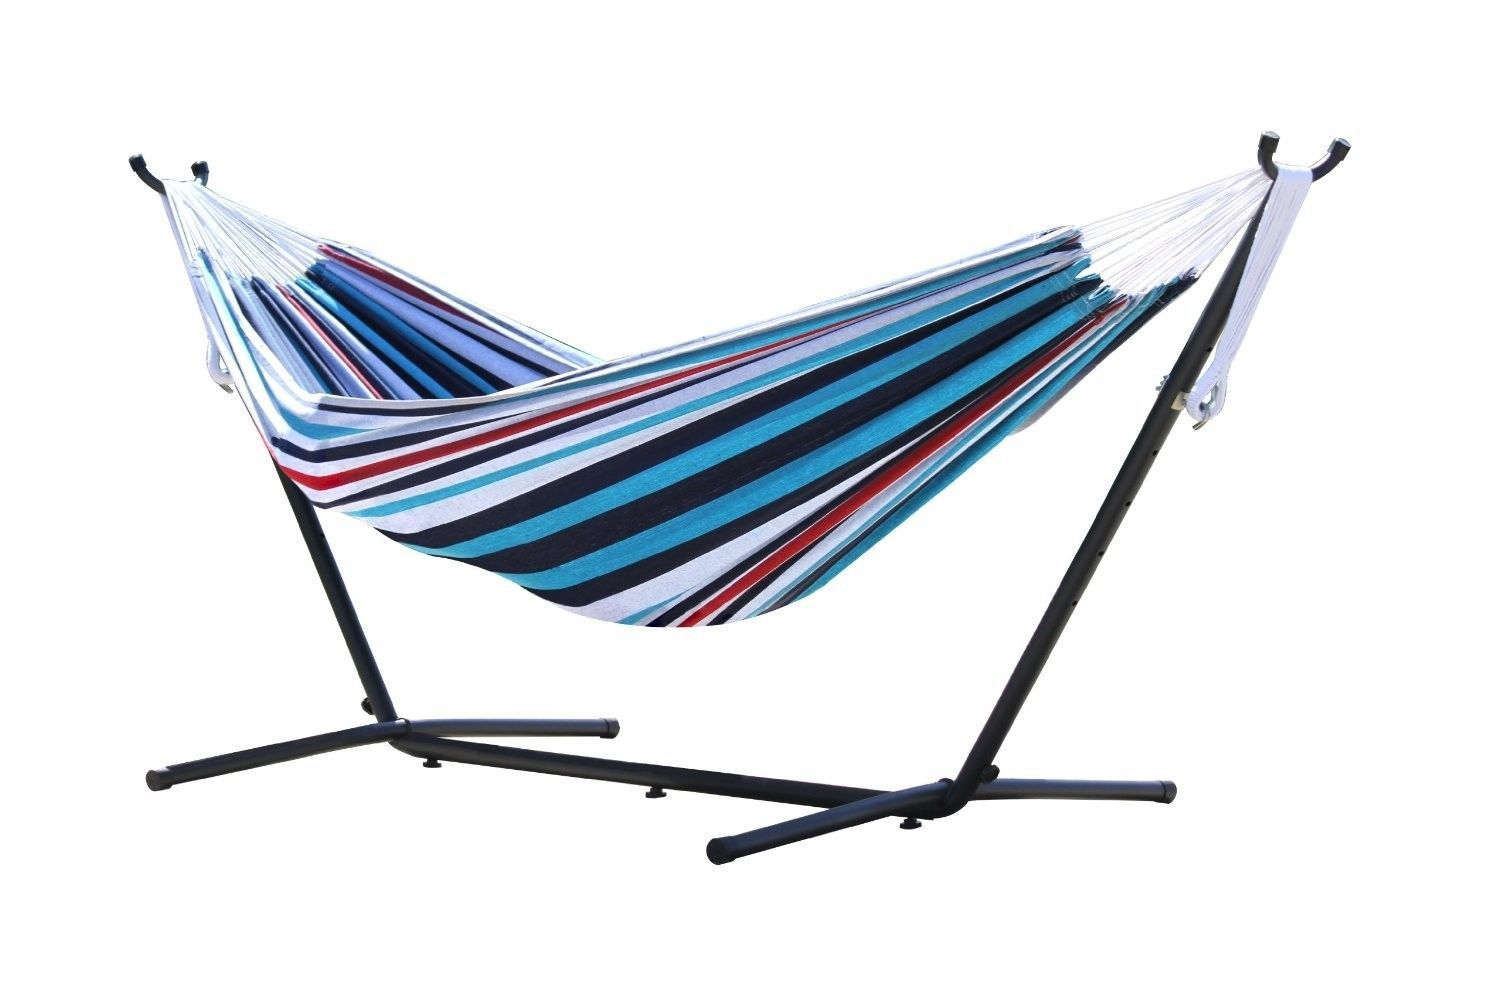 Vivere Double Hammock Steel Stand Patio Outdoor Camp Picnic Garden Furniture Bed